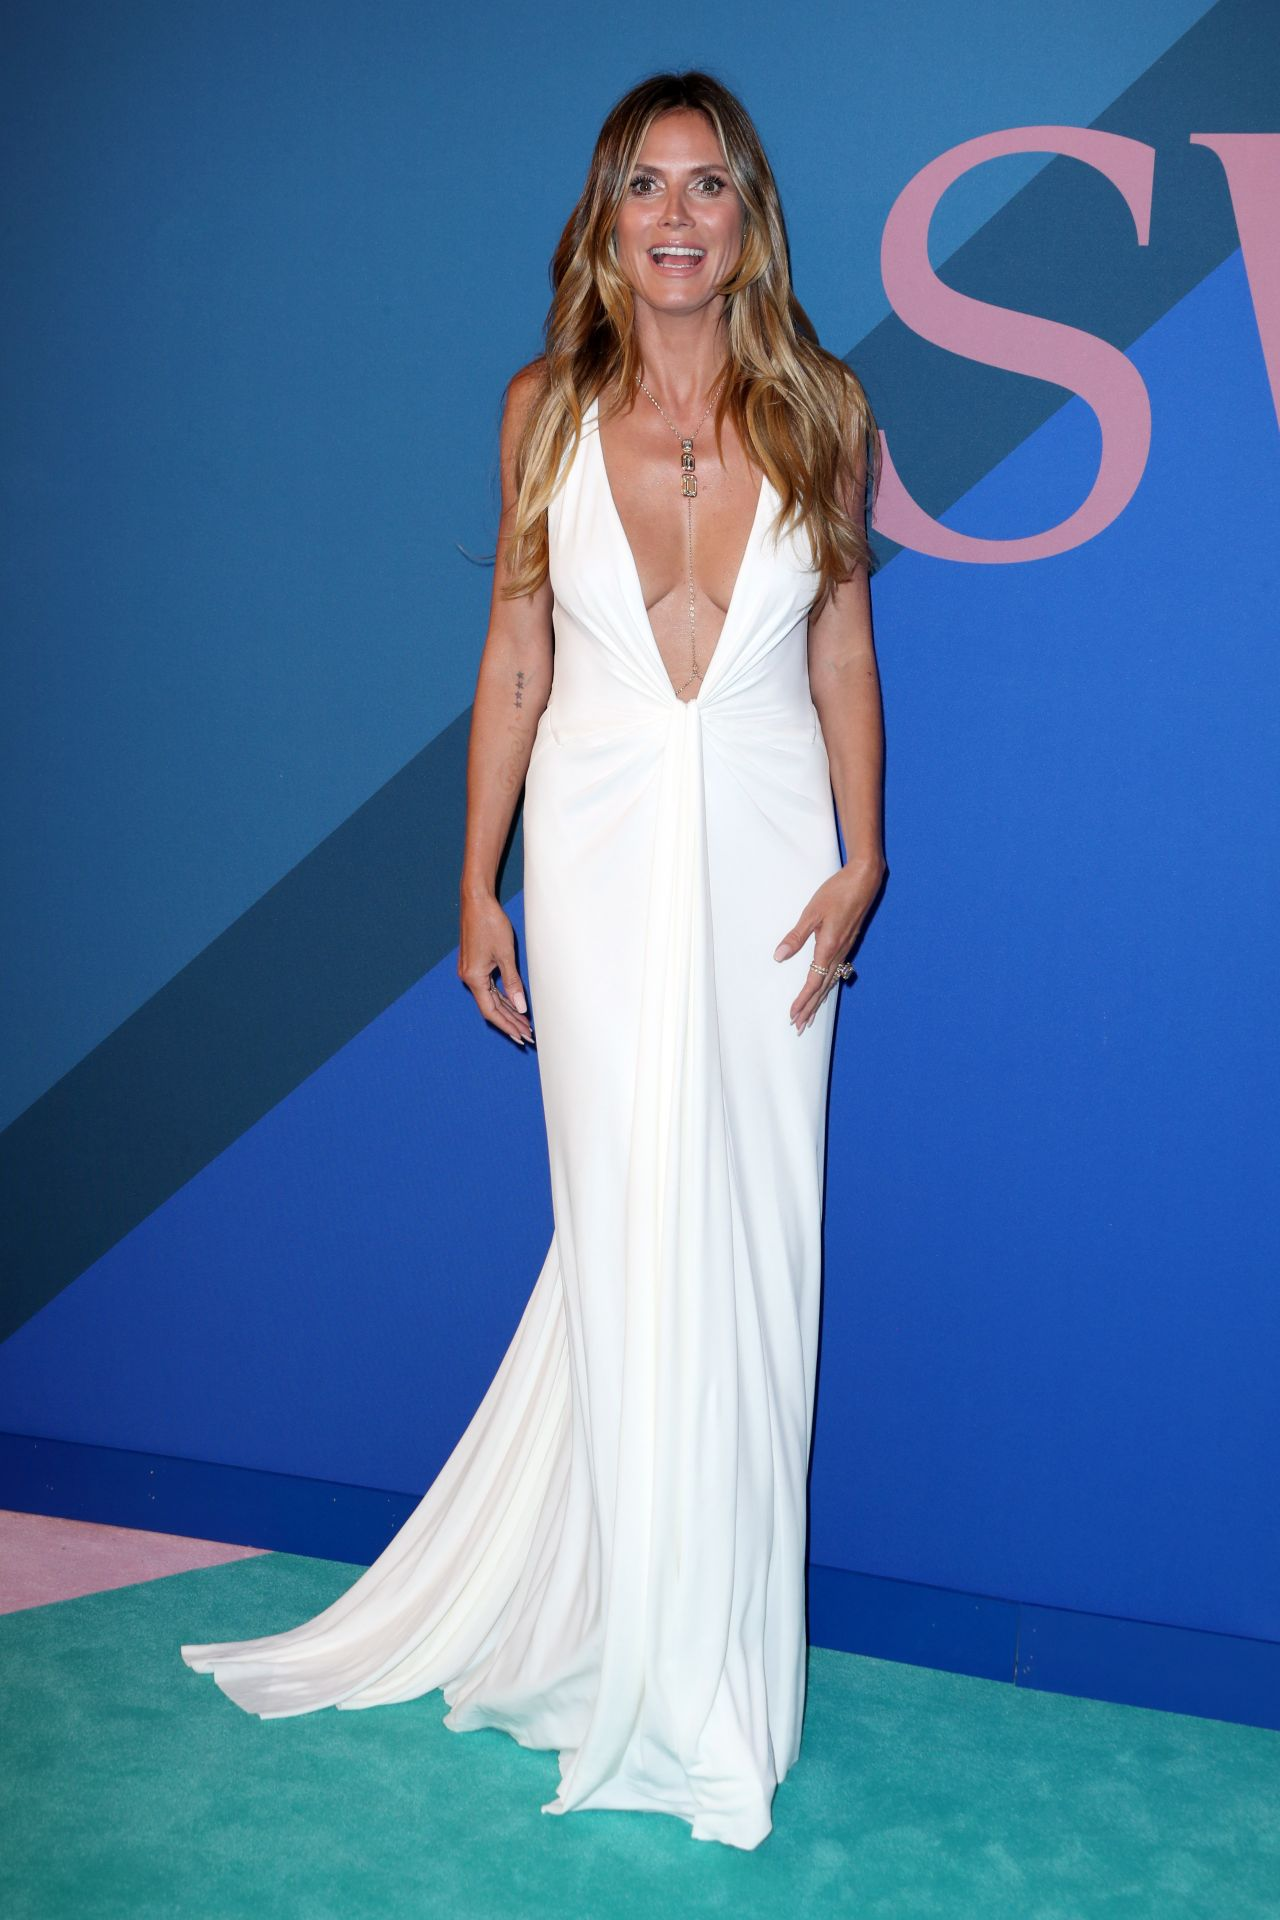 Heidi Klum On Red Carpet Cfda Fashion Awards In New York